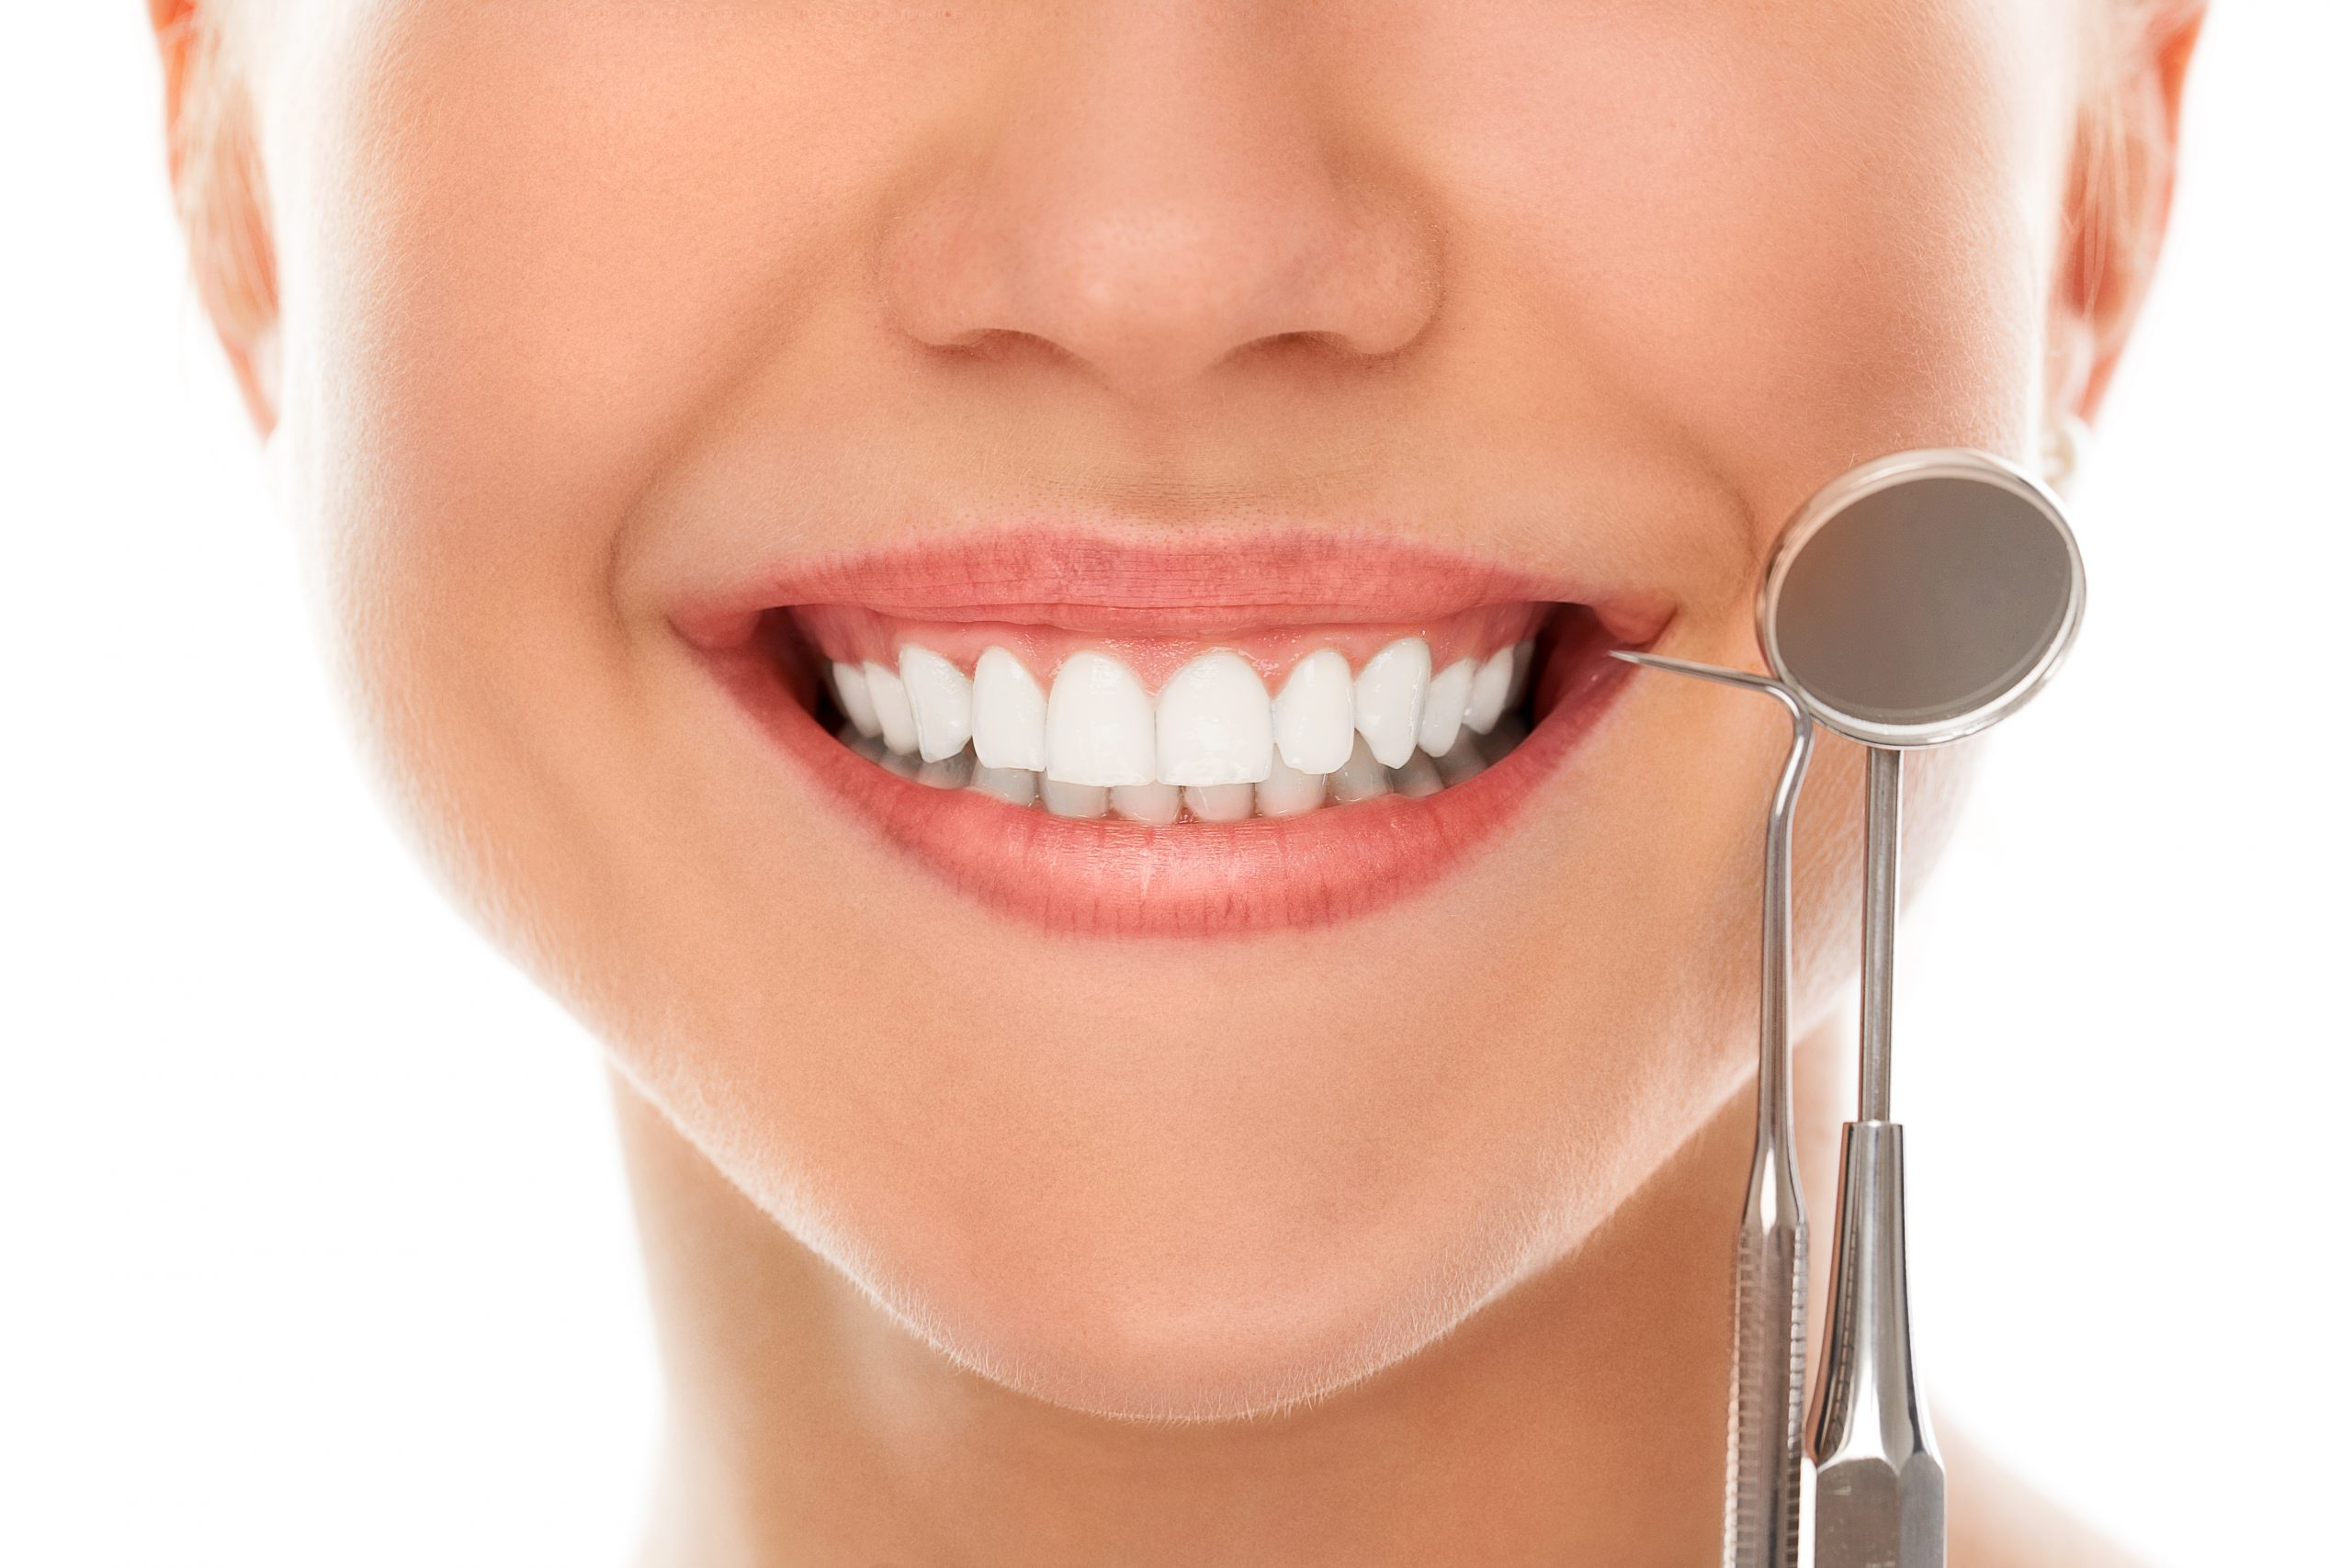 Is Teeth Whitening Right for You?